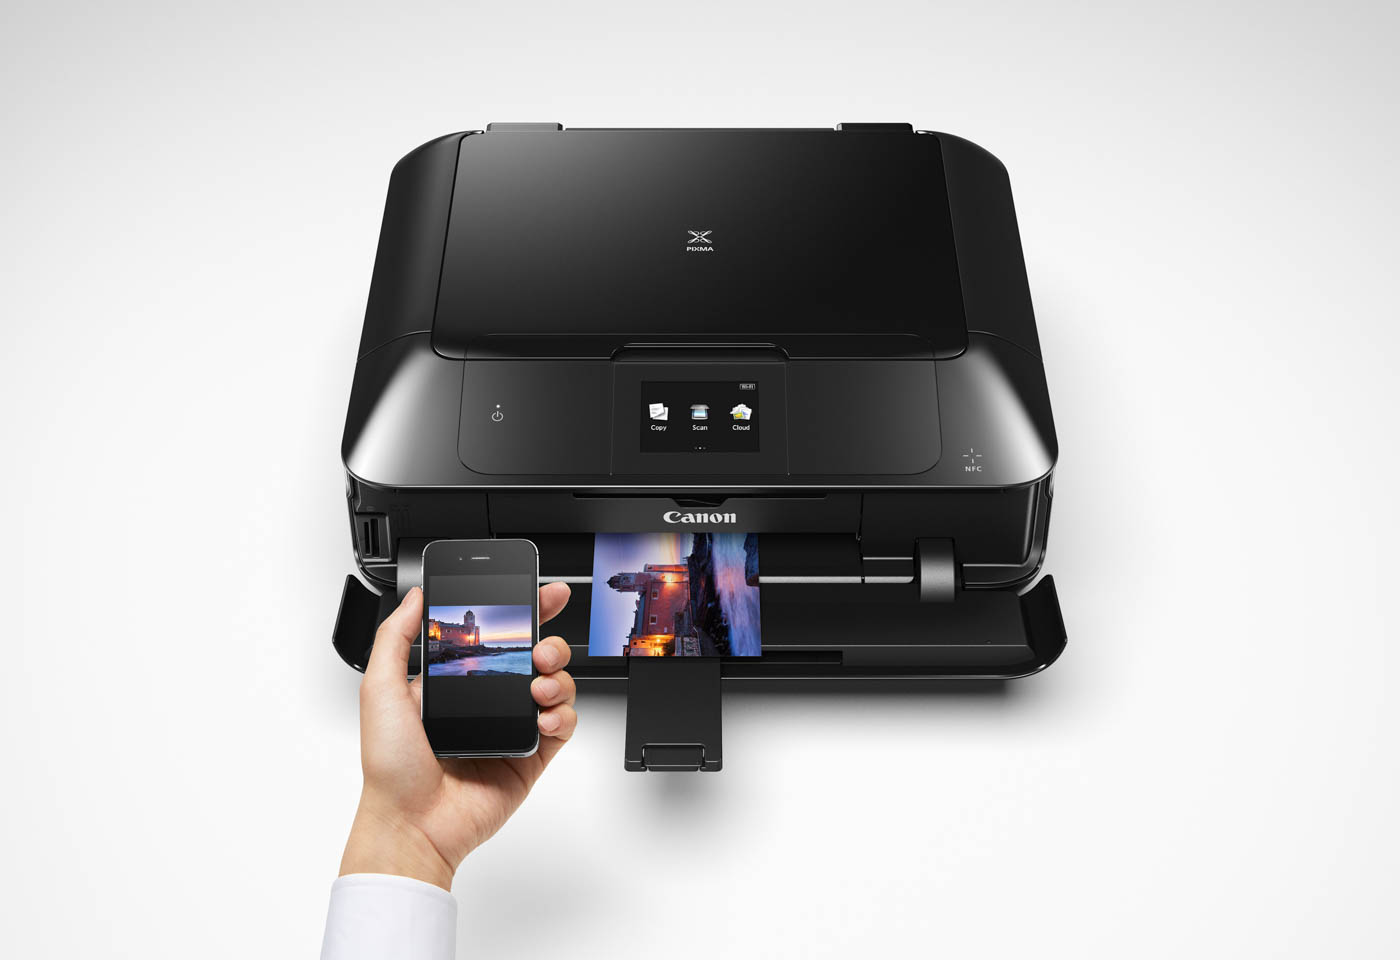 Canon PIXMA MG7760 printer with smart devices